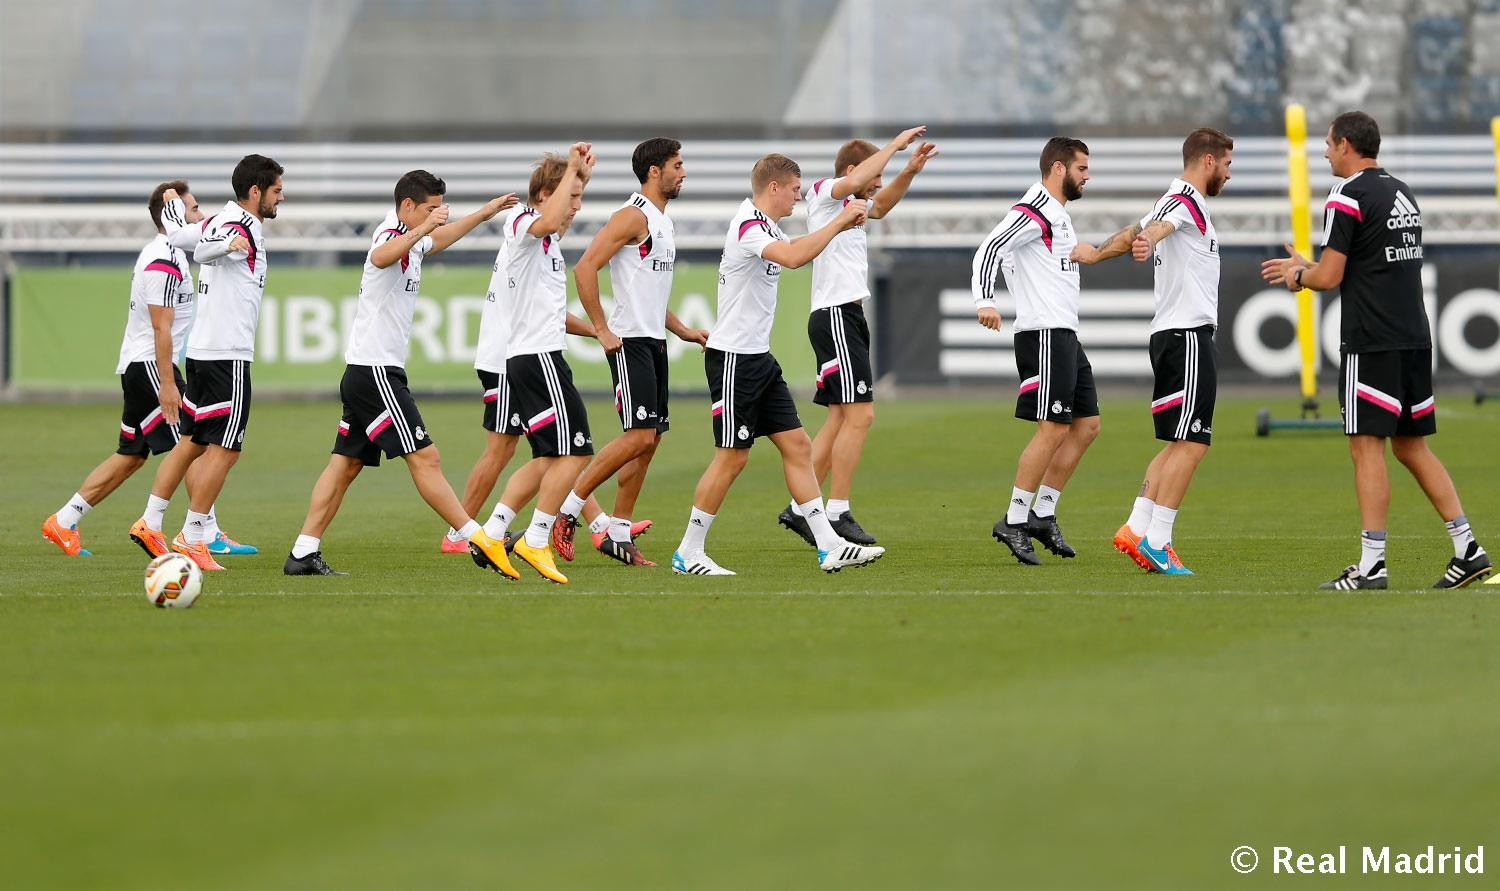 Real Madrid - Entrenamiento del Real Madrid - 18-09-2014